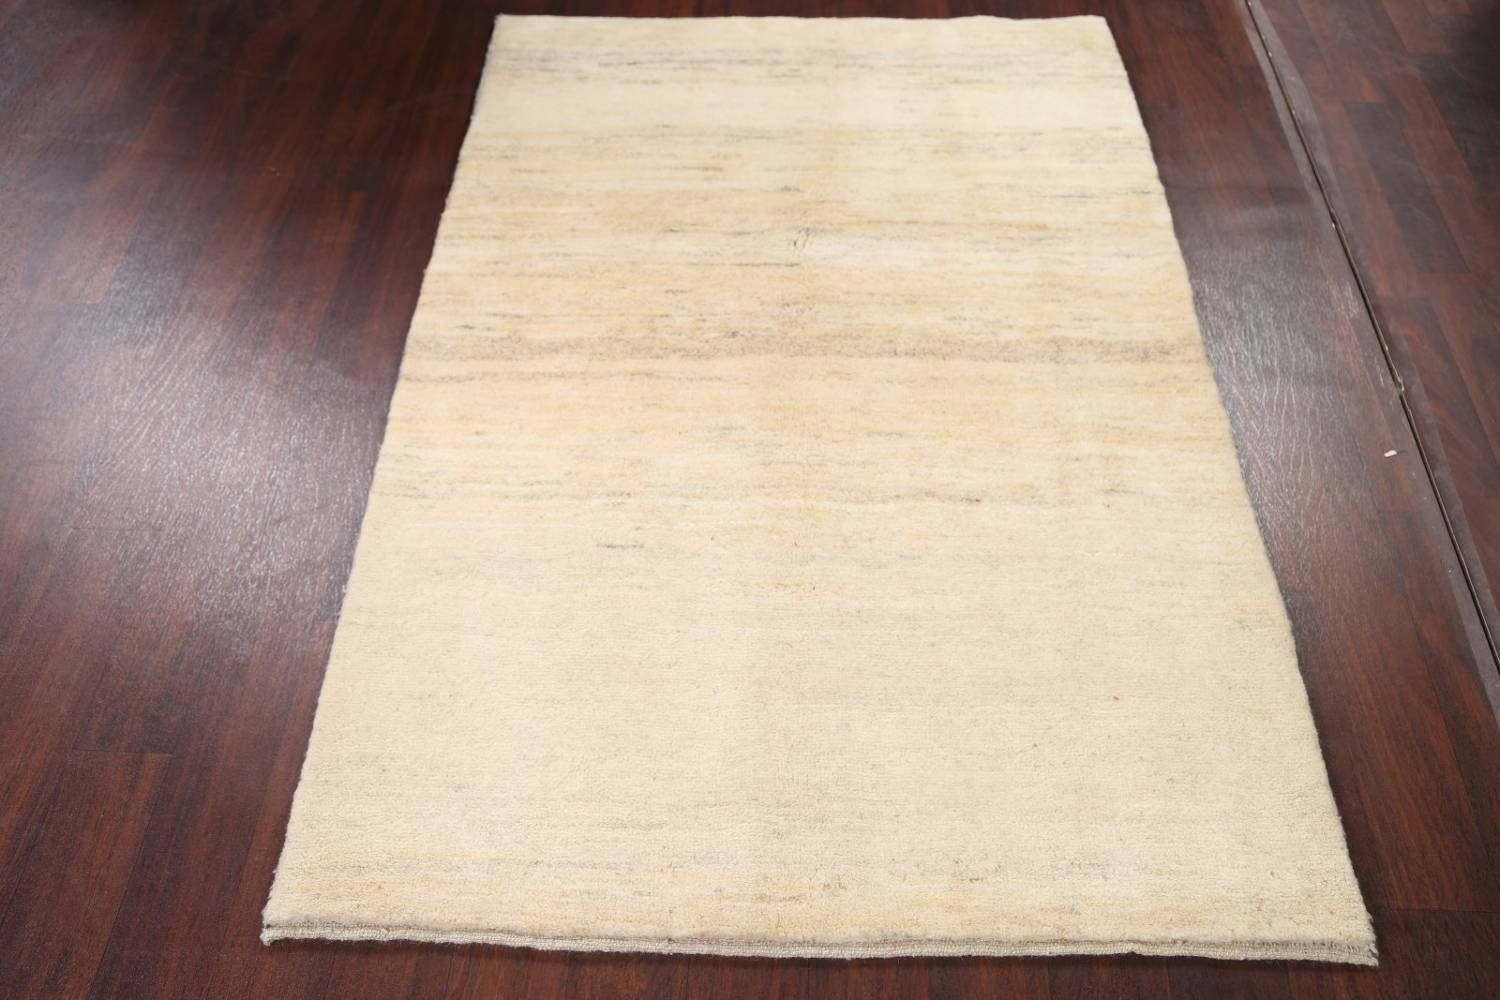 Solid Gabbeh Shiraz Persian Modern Hand-Knotted Wool Rug 4x6 image 9